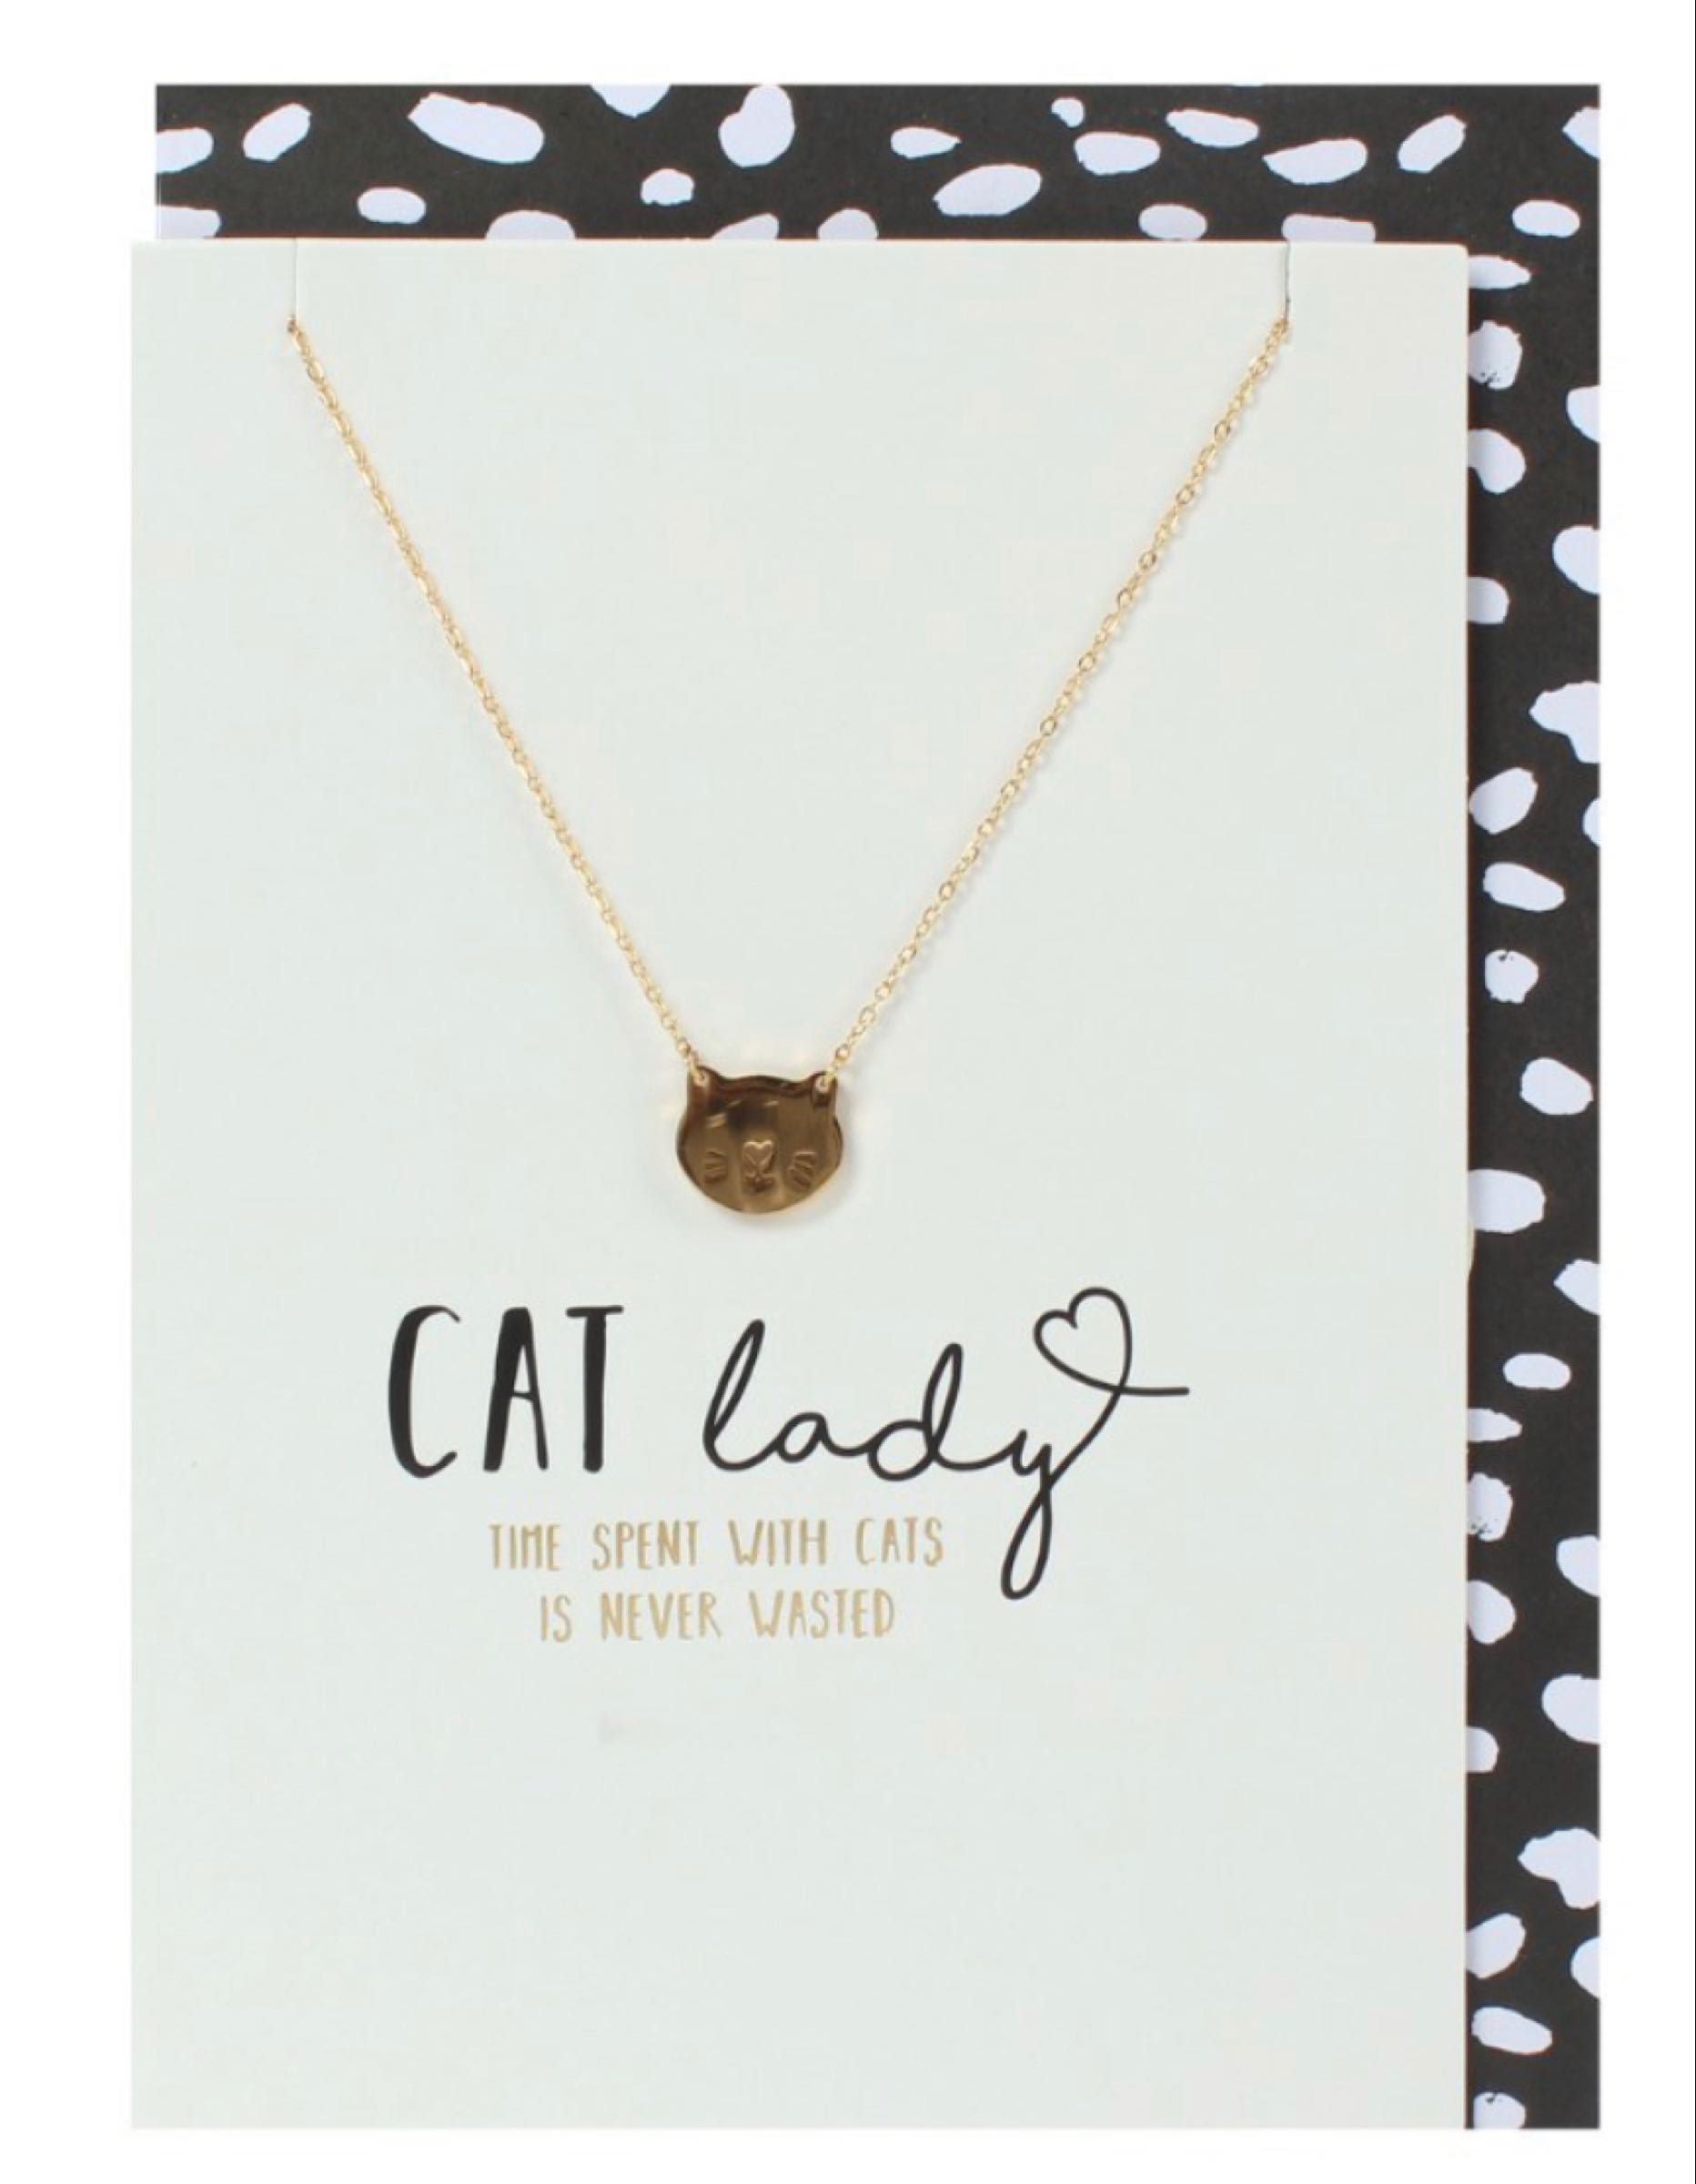 Cat Lady Greeting Card with Cat Necklace